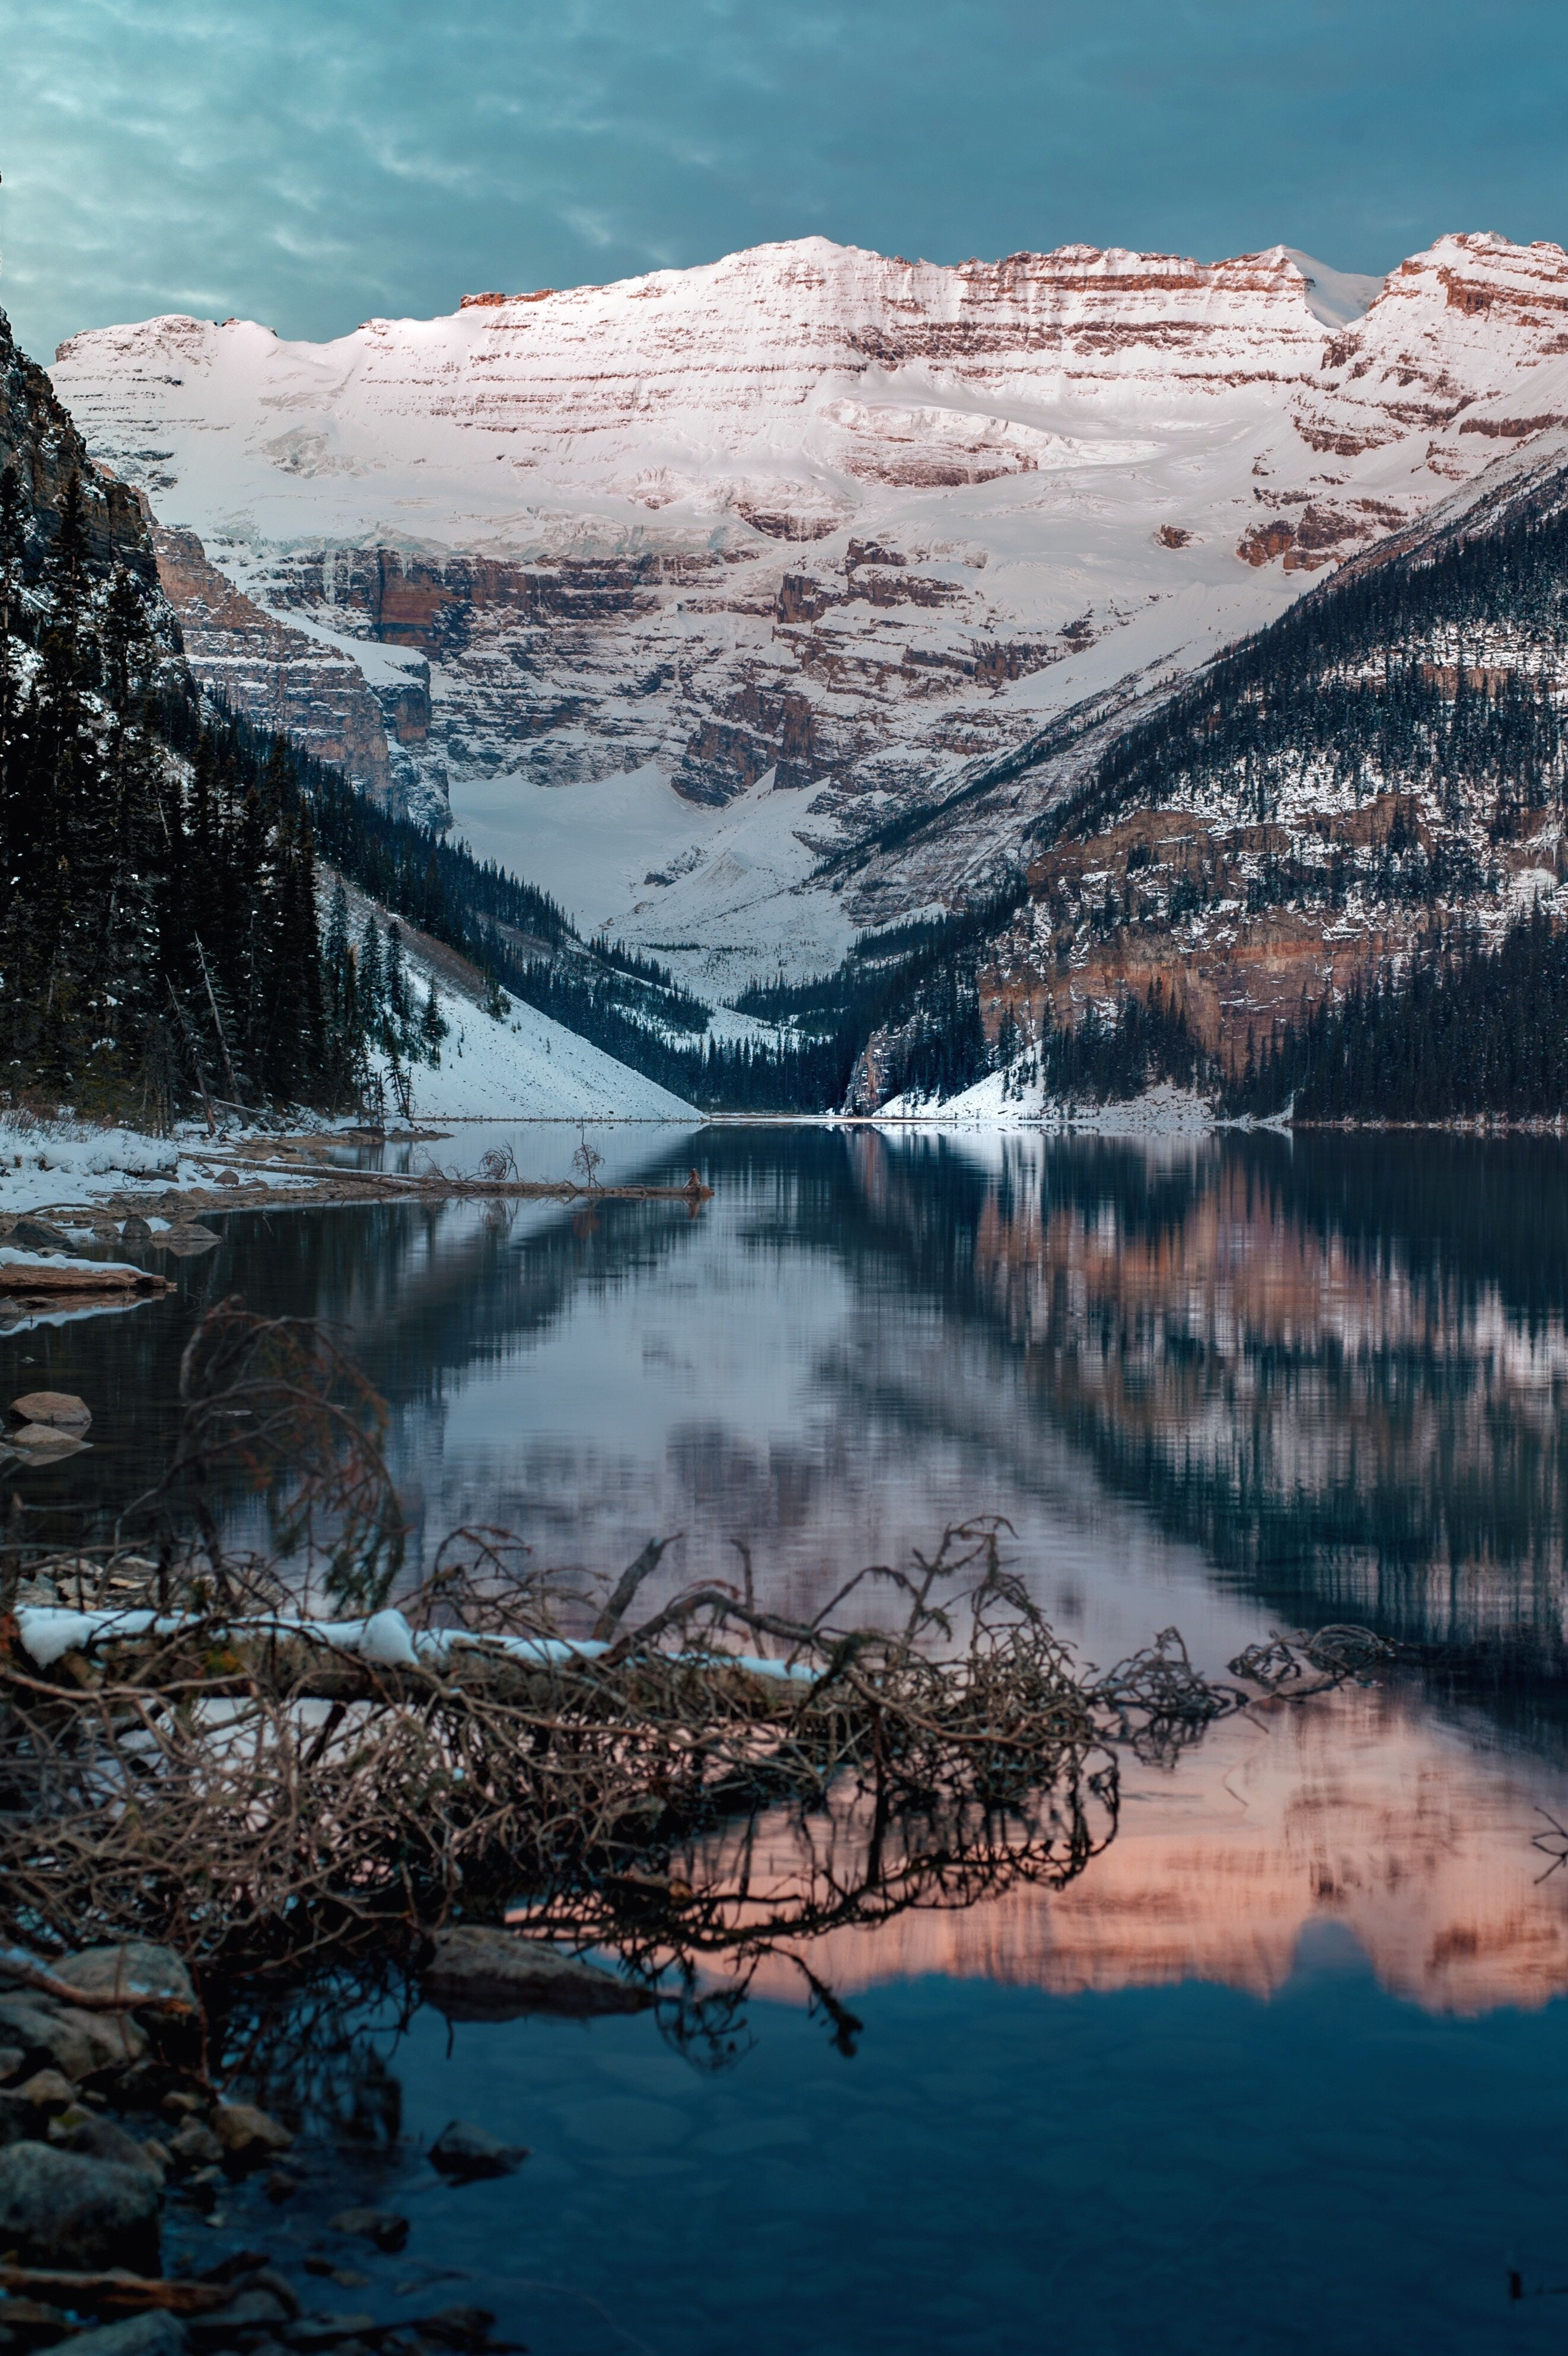 Travelbeing Lake Canada Mountains Nature Travel Nature Iphone Wallpaper Iphone Wallpaper Travel Landscape Photography Nature